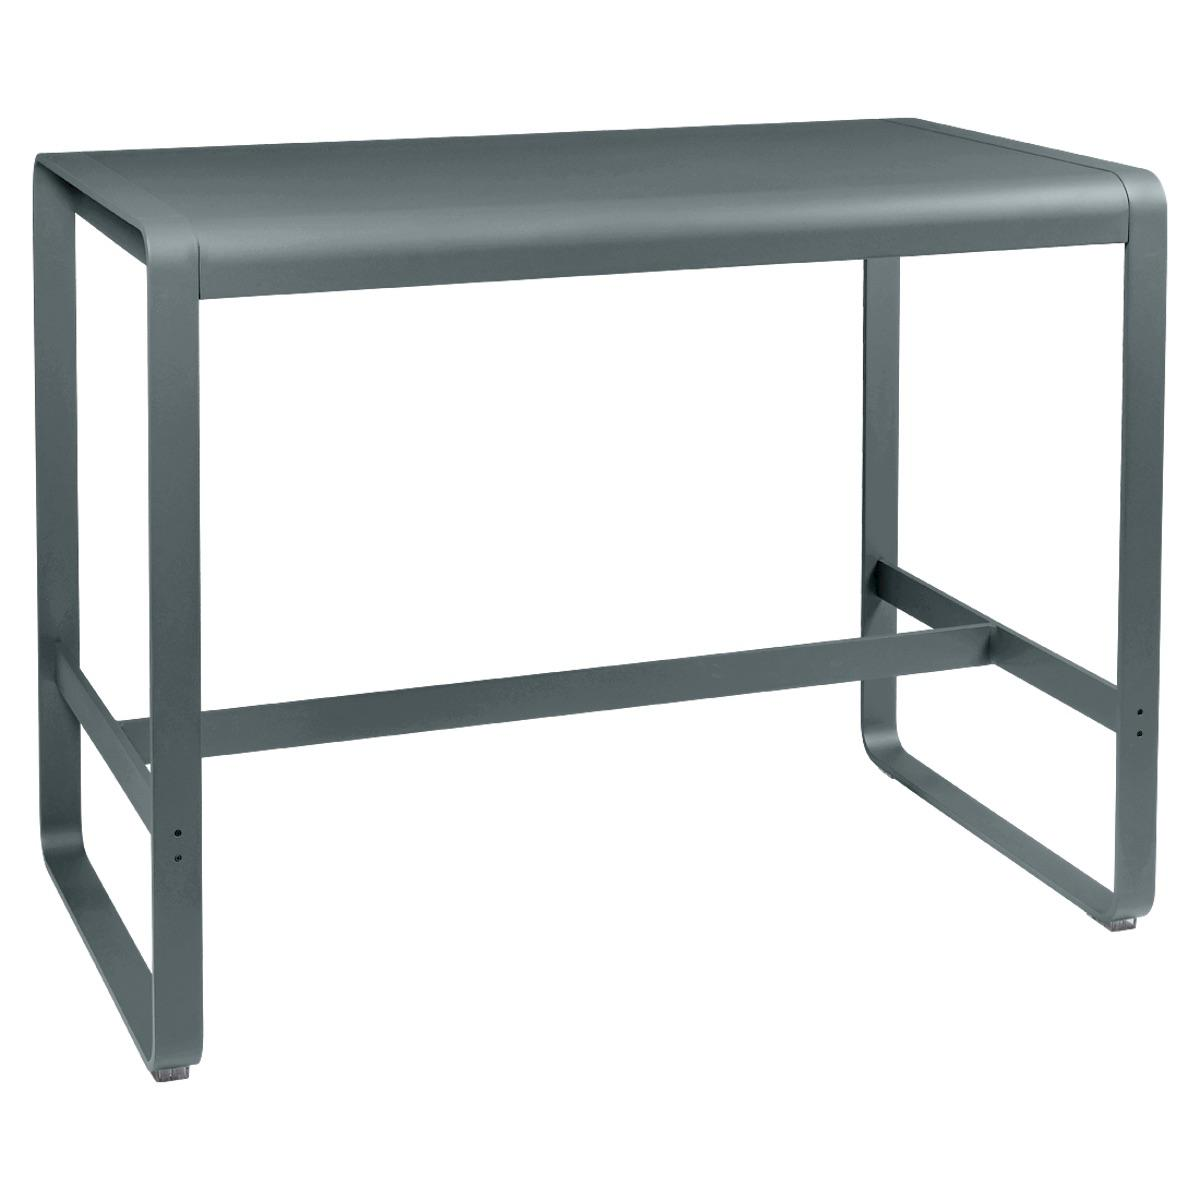 Table haute 80x140cm BELLEVIE Fermob gris orage